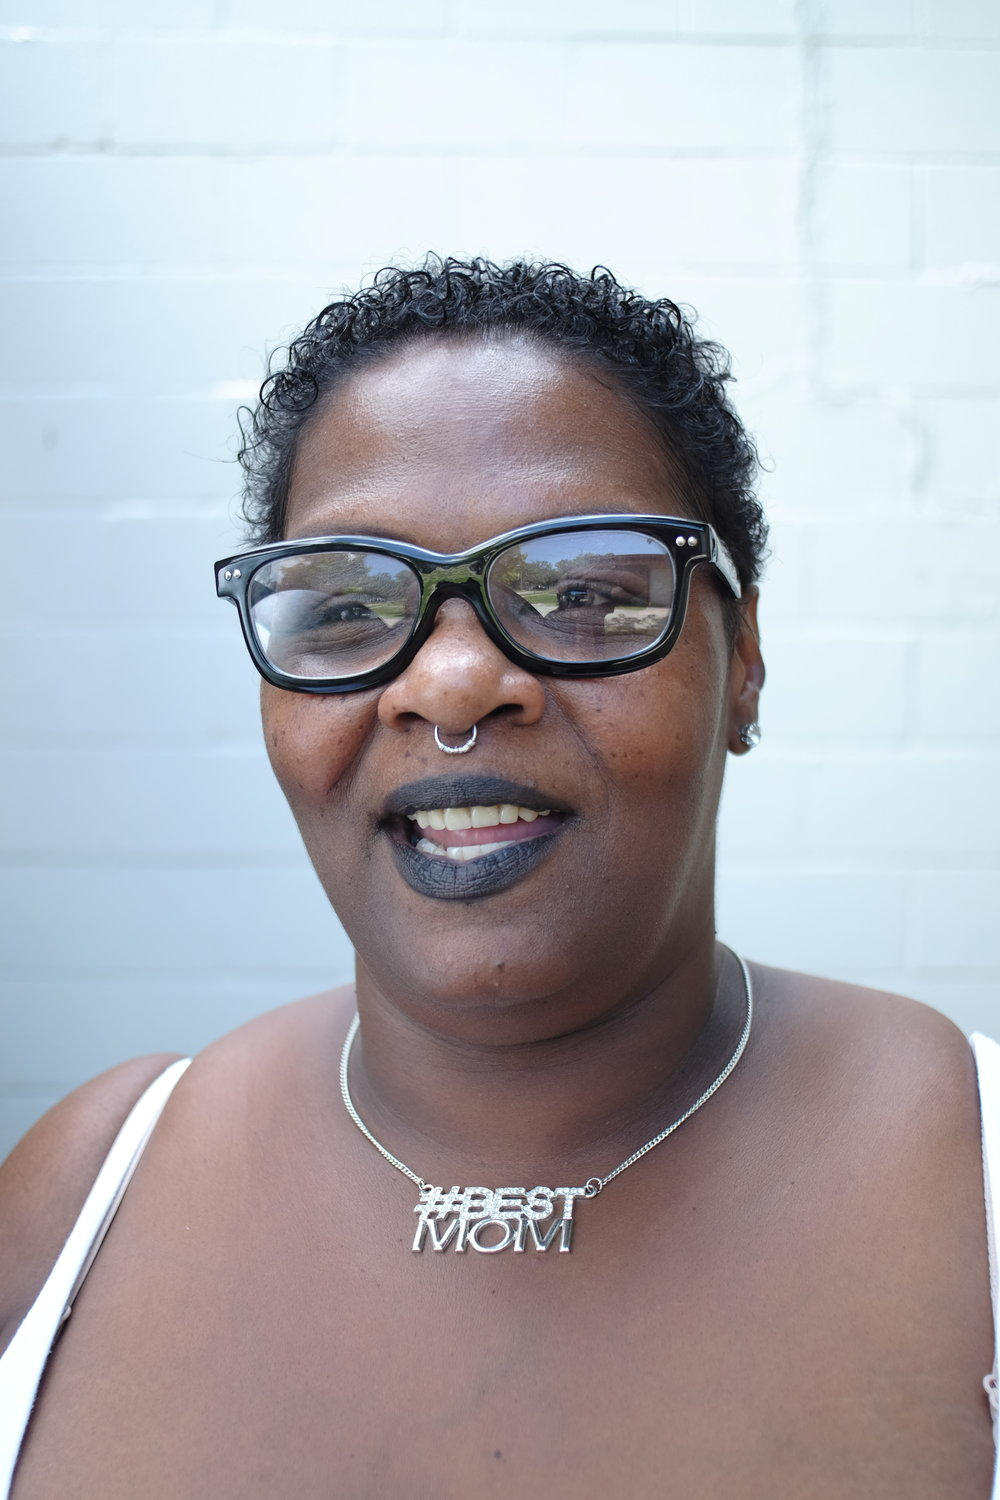 Da'Wanda helps manage Sacred Suds, a community center for neighbors who gather to do laundry, eat meals, check their emails, etc. Da'Wanda is an awesome neighbor with a huge heart for the City.  She is also working on a masters degree!